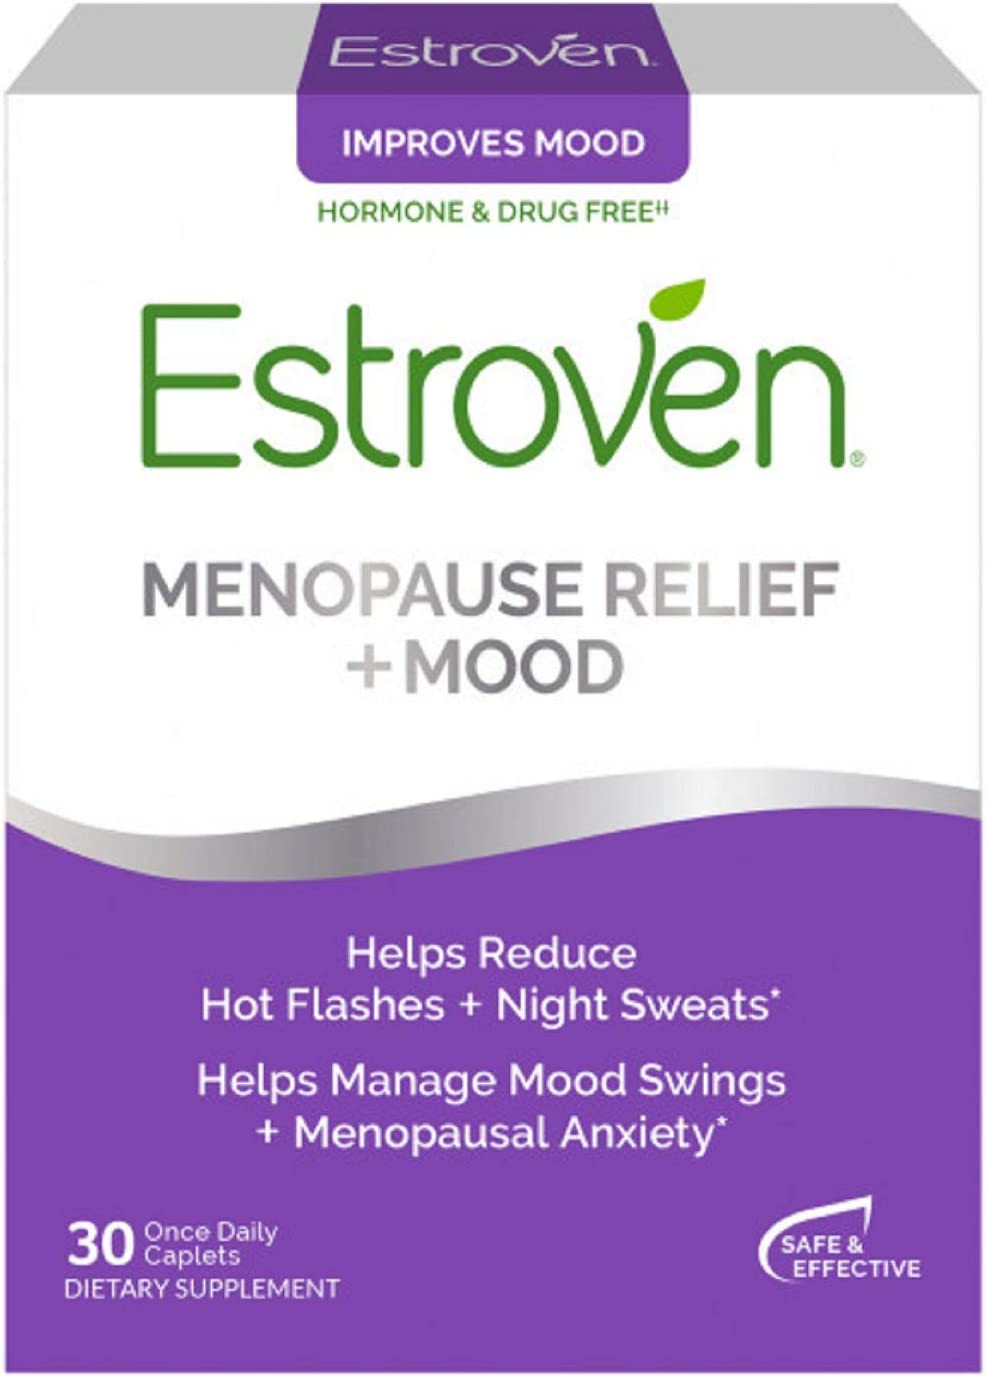 Estroven Menopause Relief + Mood 30-Pills For Hot Flashes ...